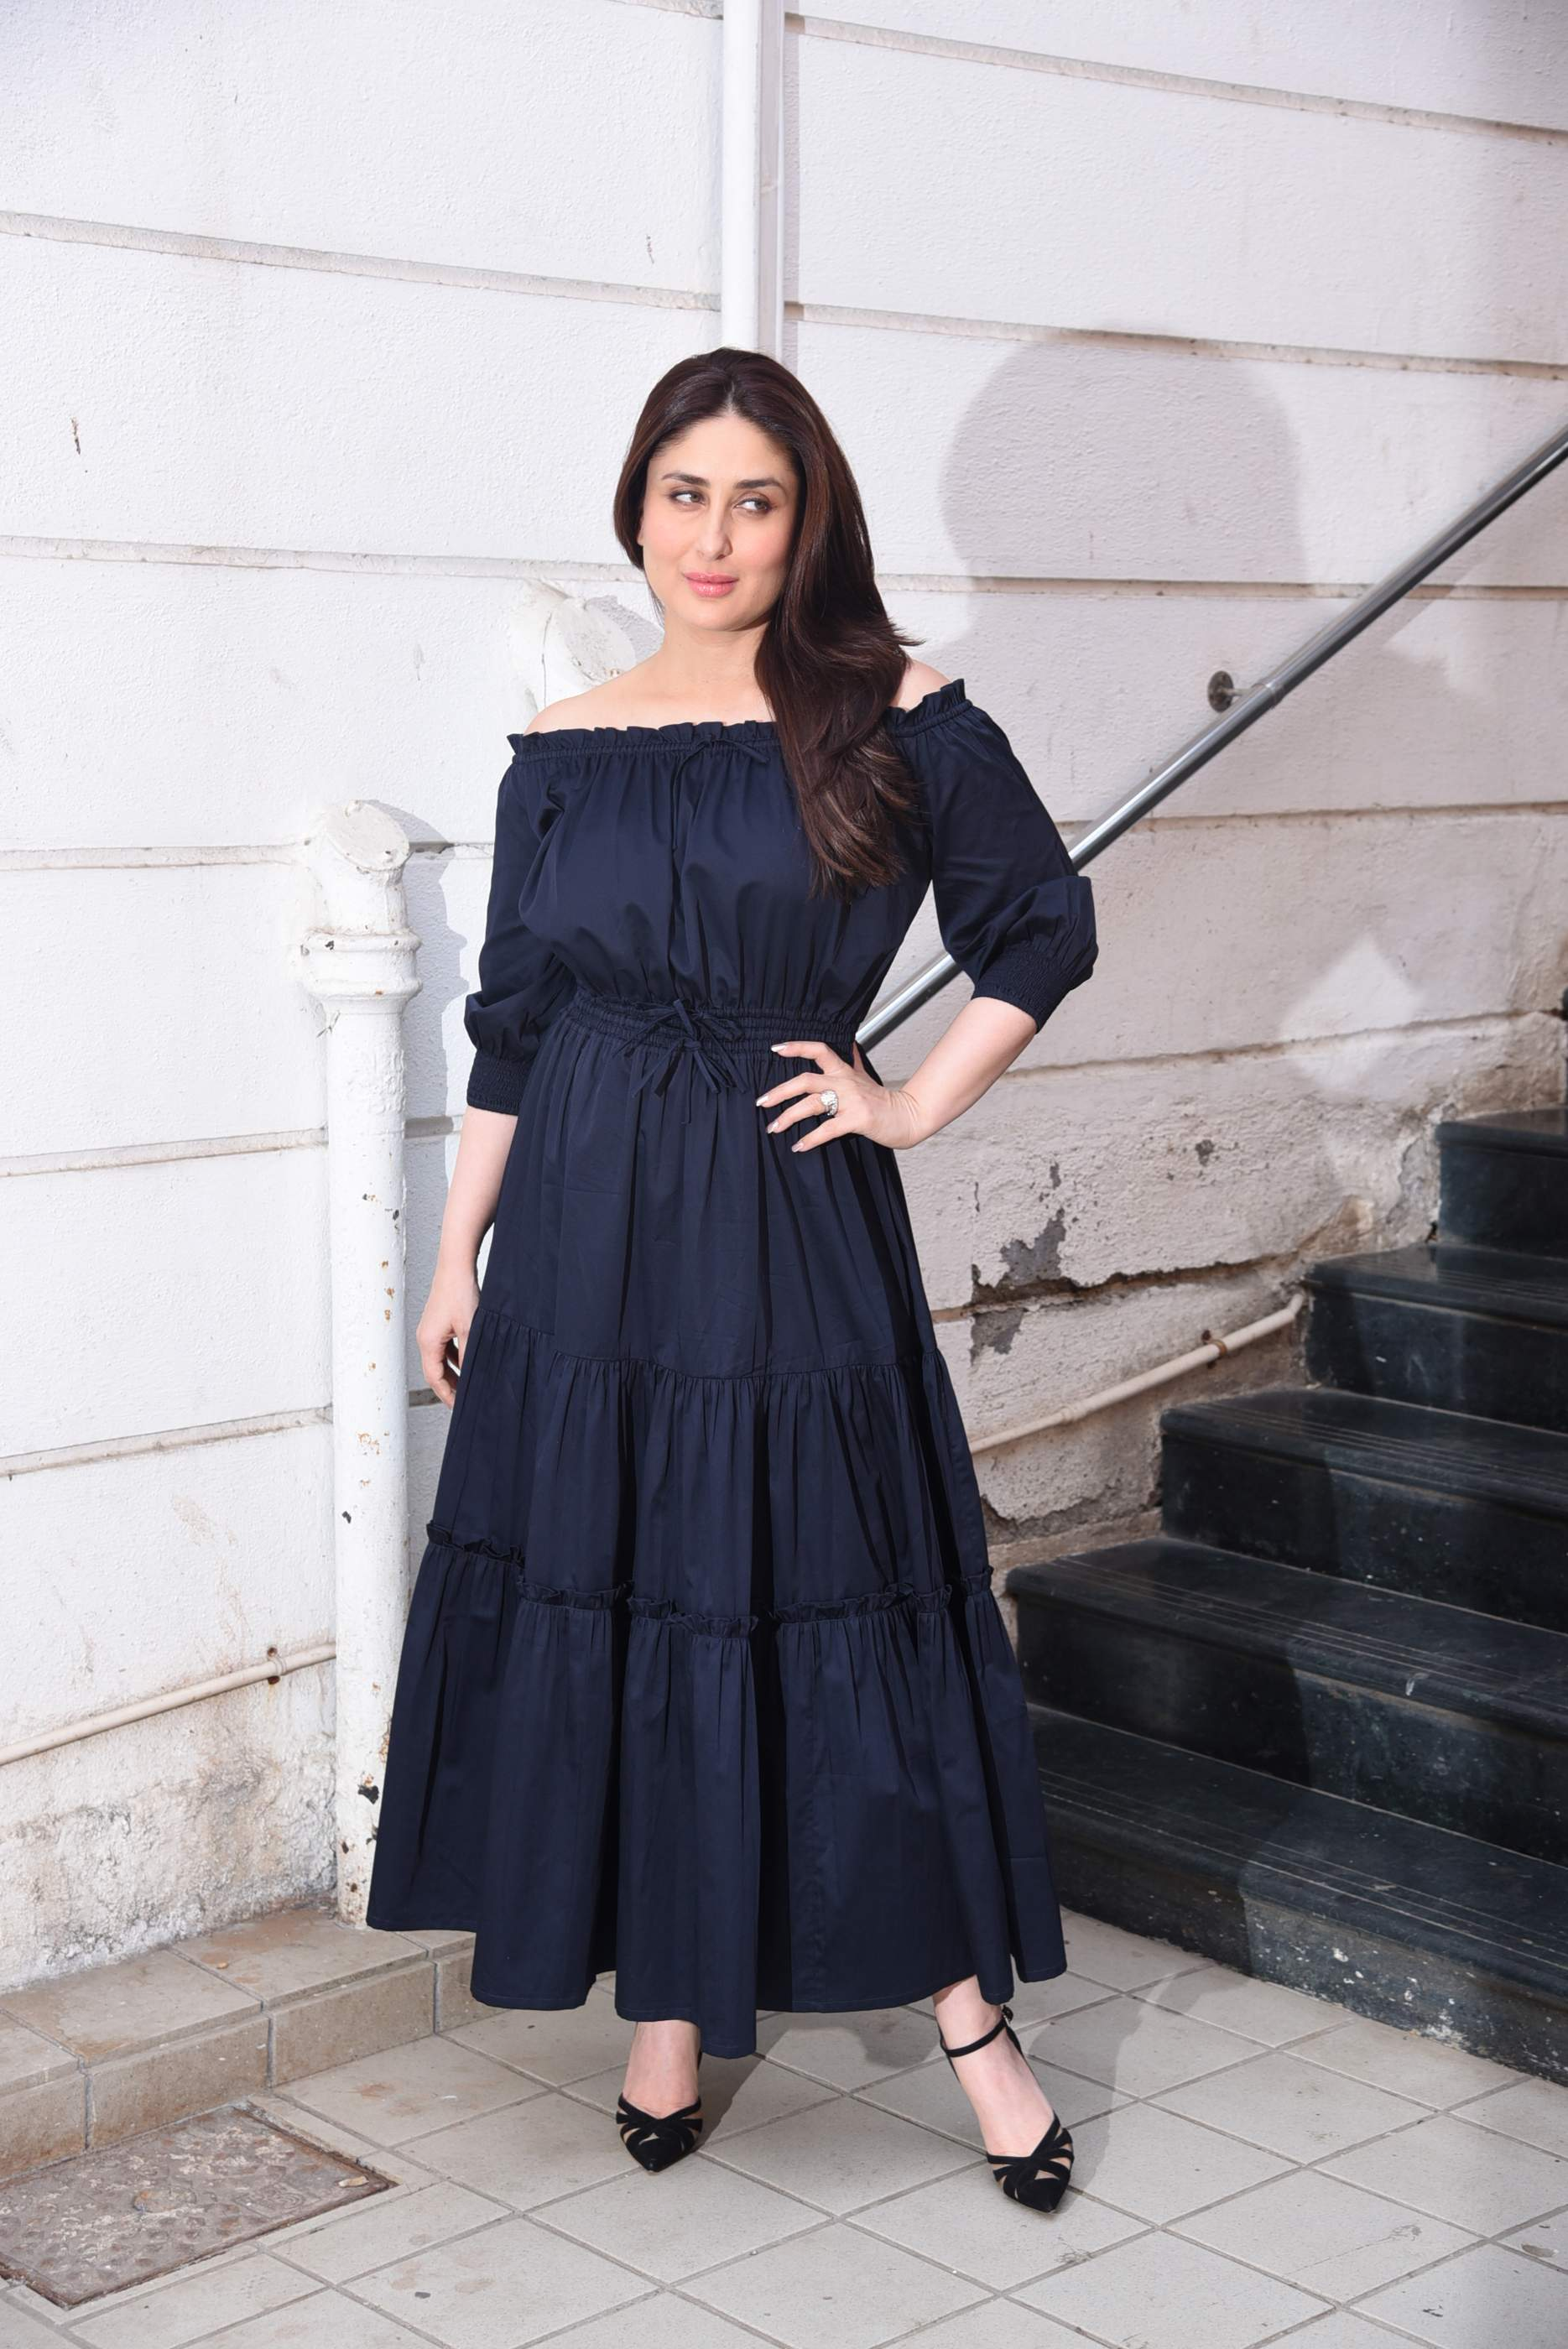 kareena kapoor Brand New Pics of Beautiful Kareena Kapoor Khan | Bollywood Kareena Rujuta Diwekar 32